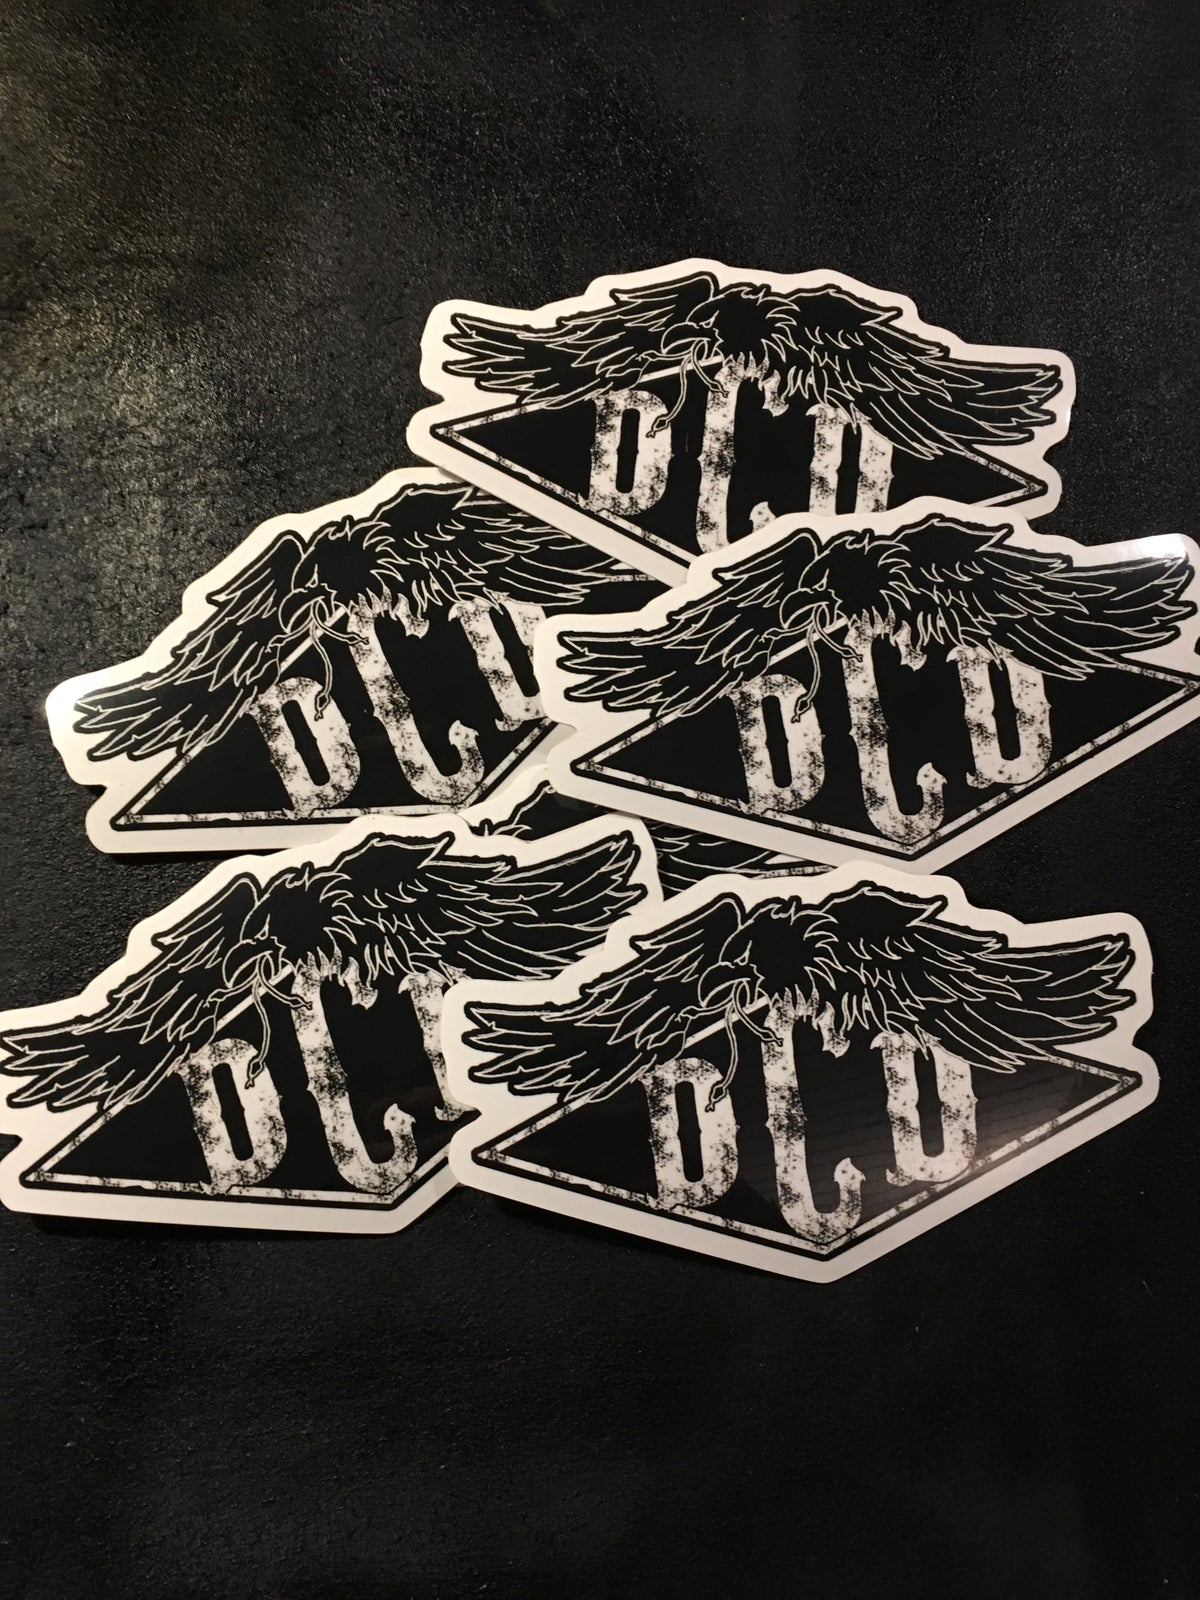 Image of DCD stickers